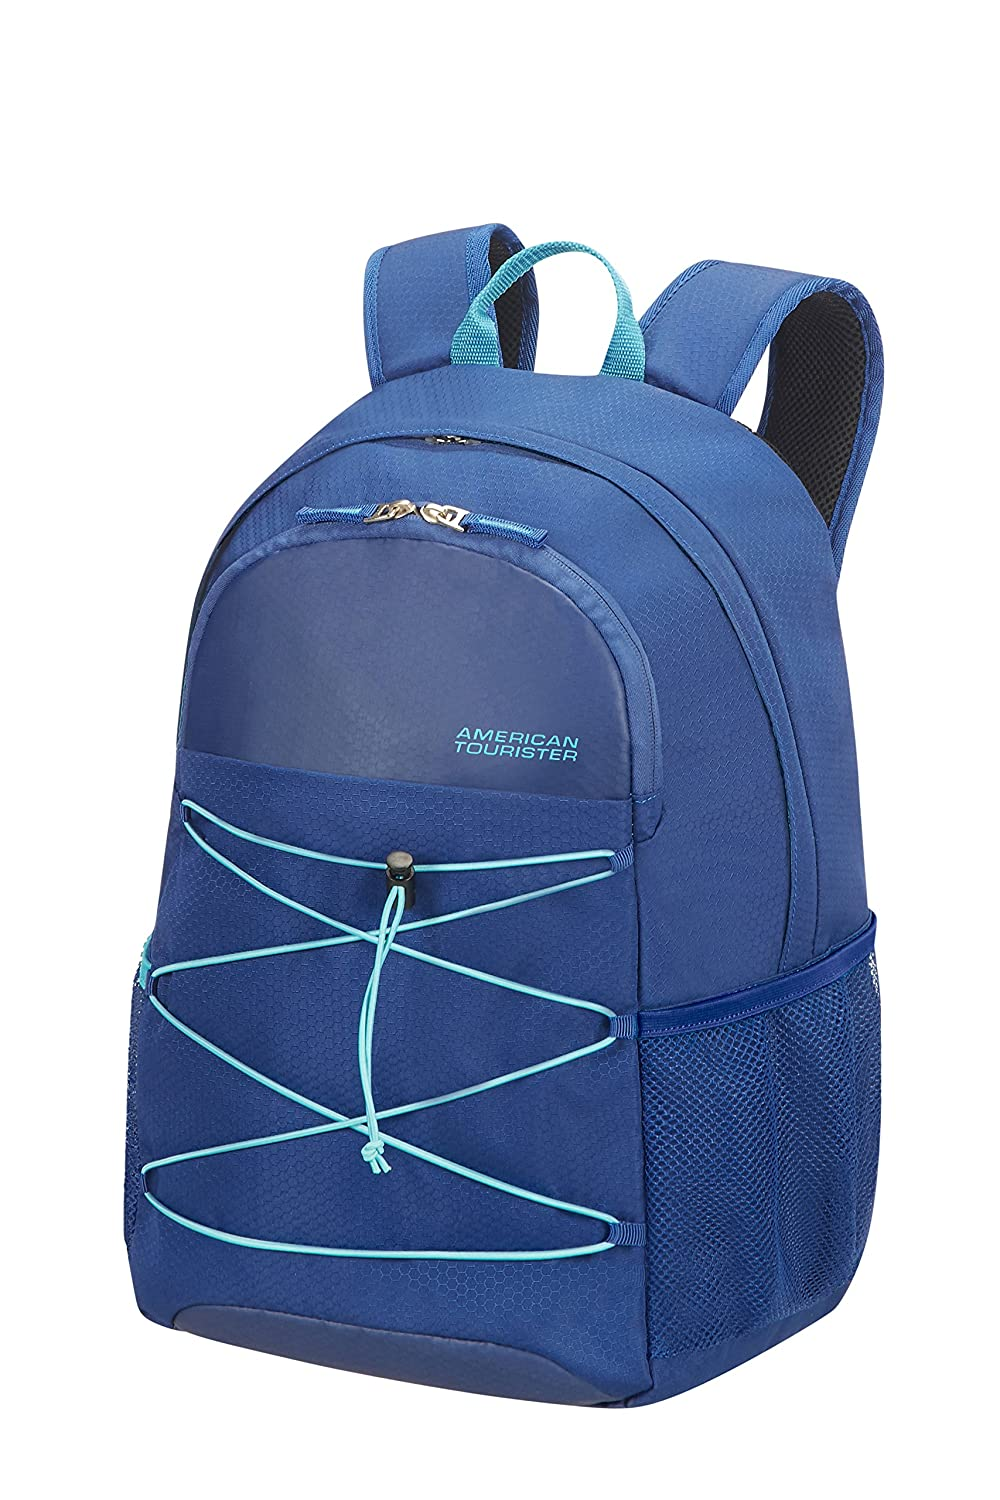 American Tourister Road Quest Backpack Medium for 15.6